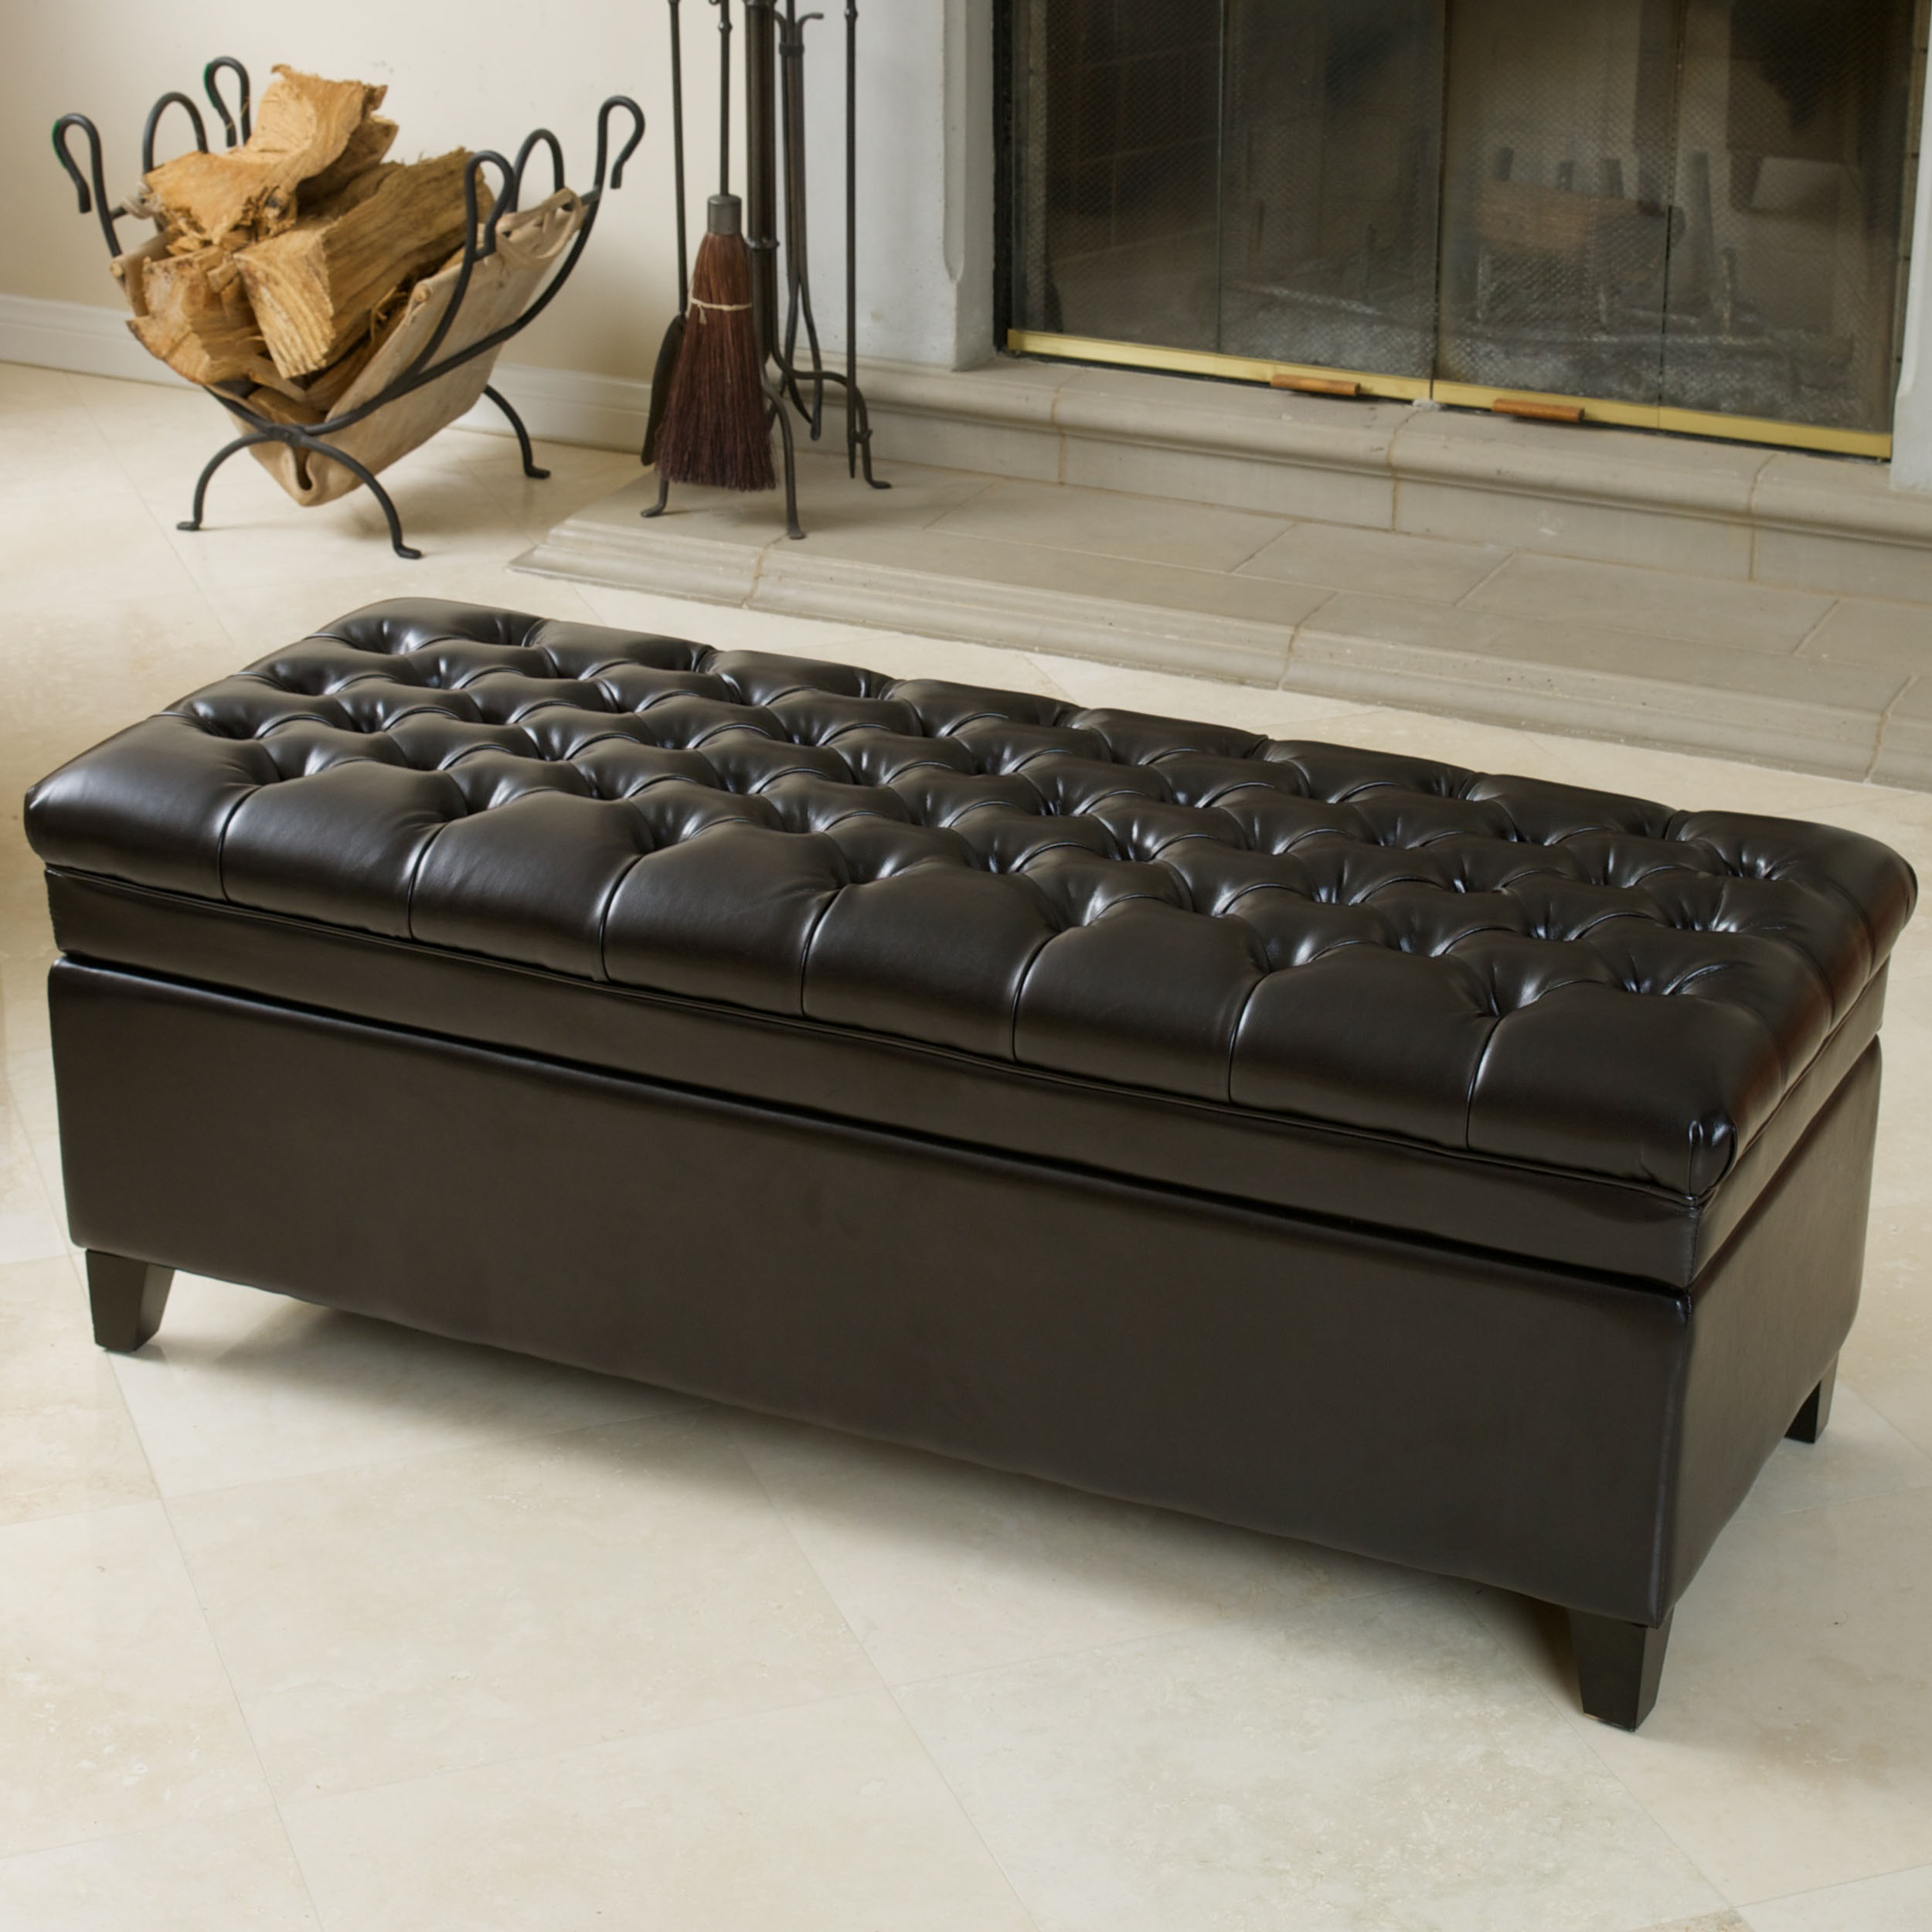 Bennette Tufted Espresso Brown Leather Storage Ottoman